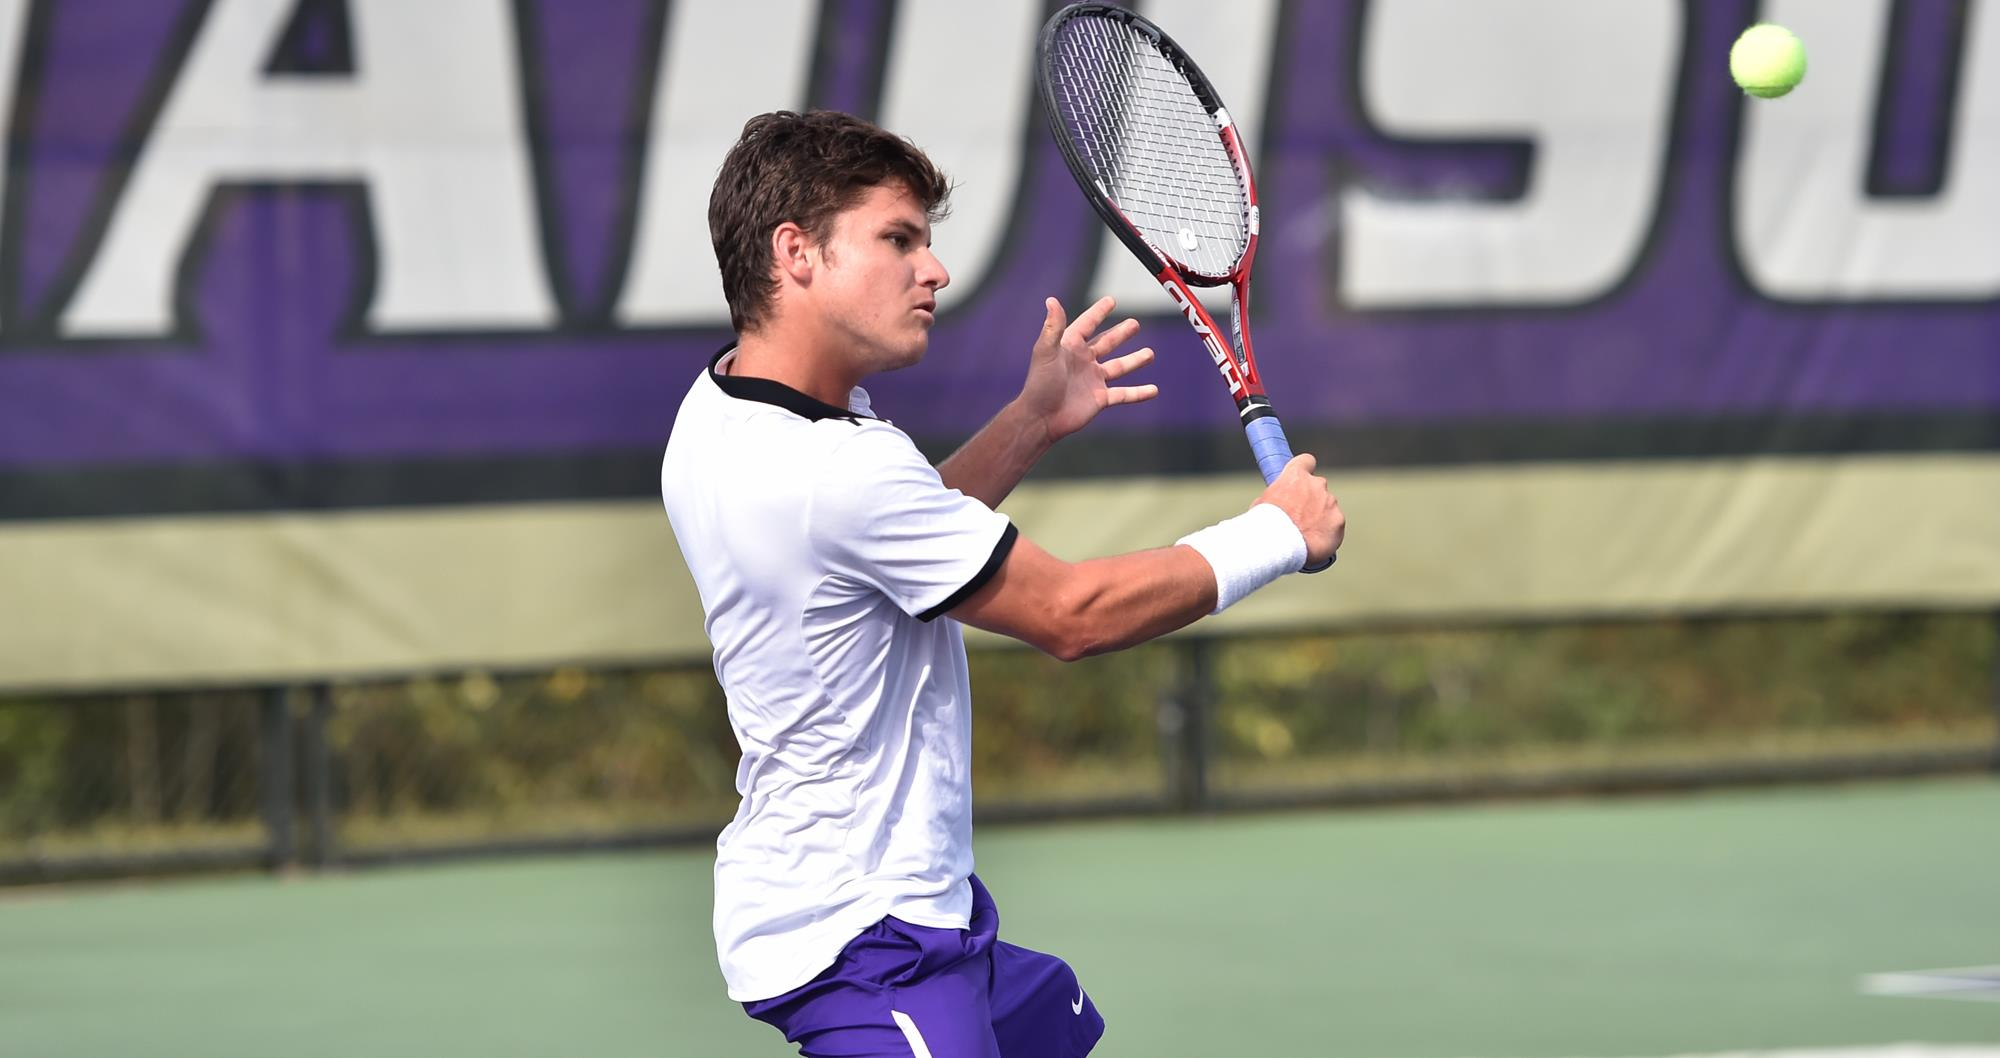 Men's Tennis: Salinas Leads JMU on Day Two of Wolfpack Invitational